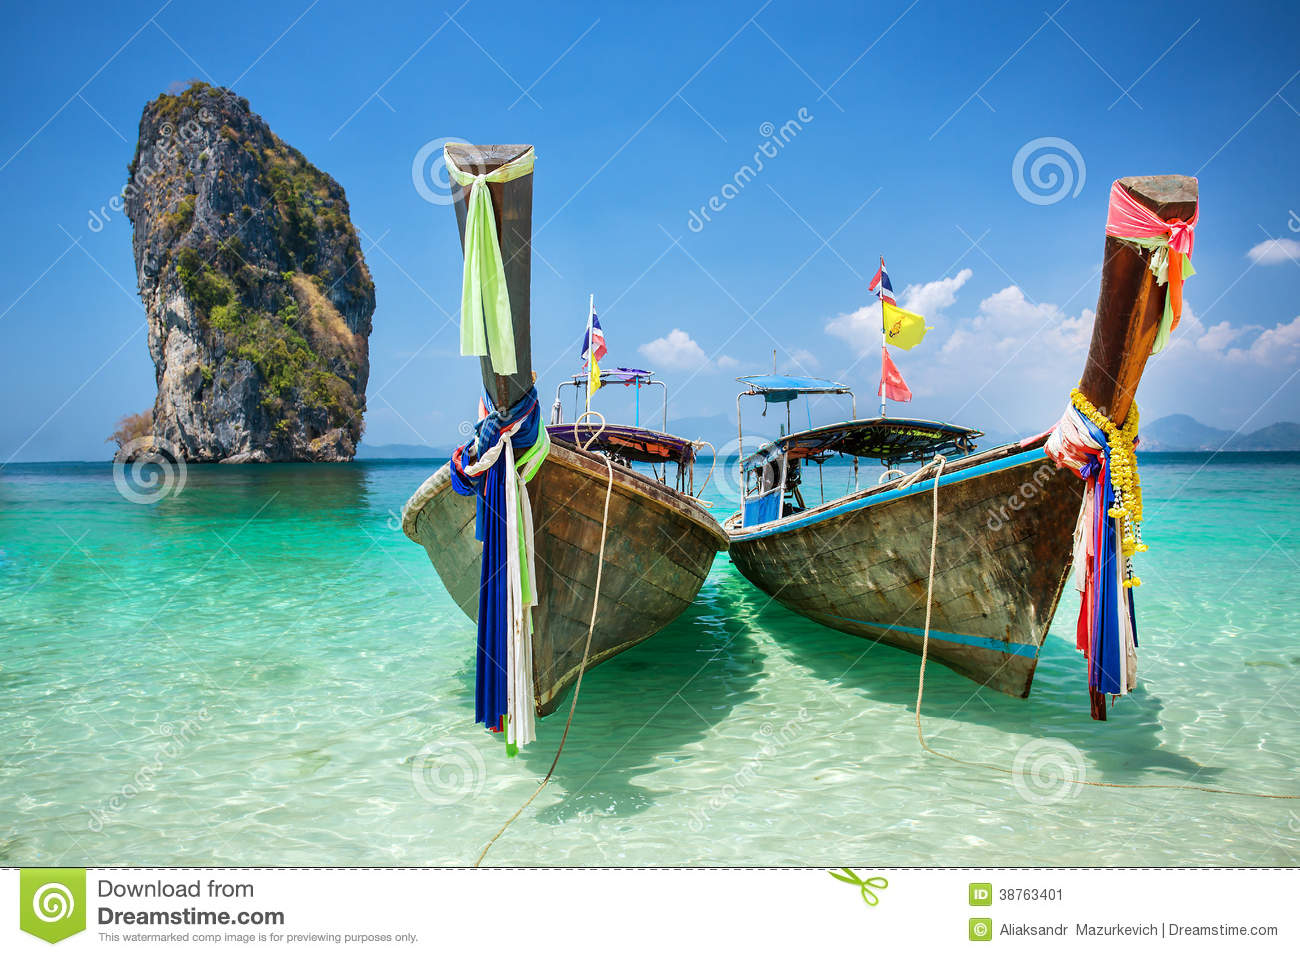 Longtail boat at the tropical beach of Poda island